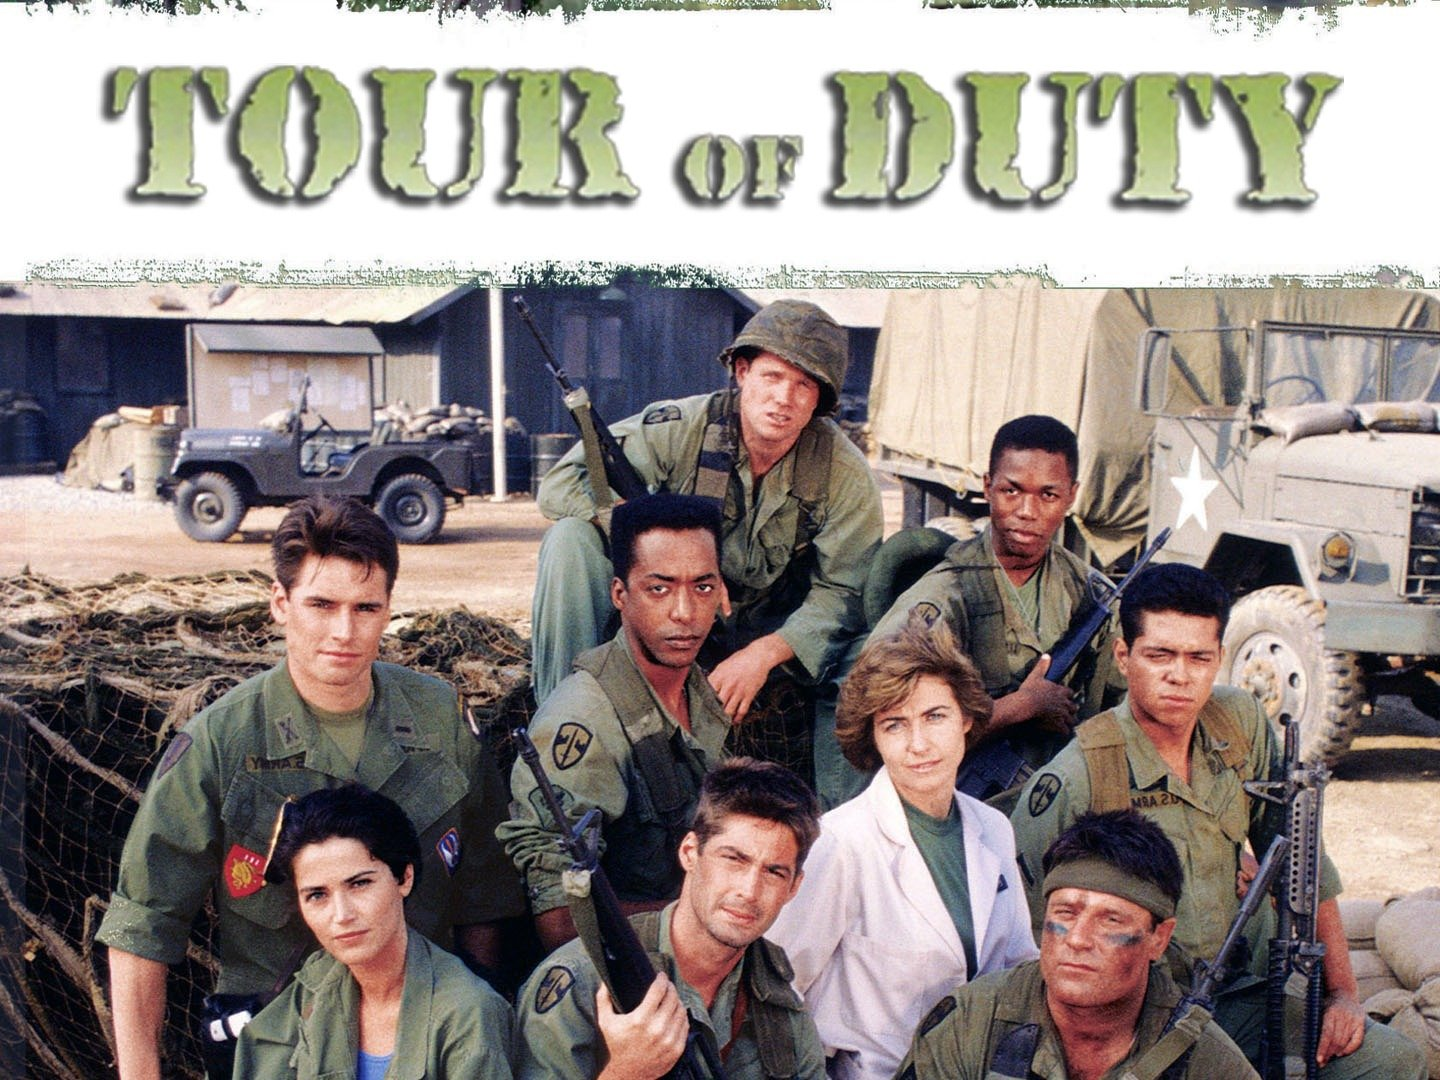 Tour of Duty - TV Show, Episode Guide & Schedule | TWC Central